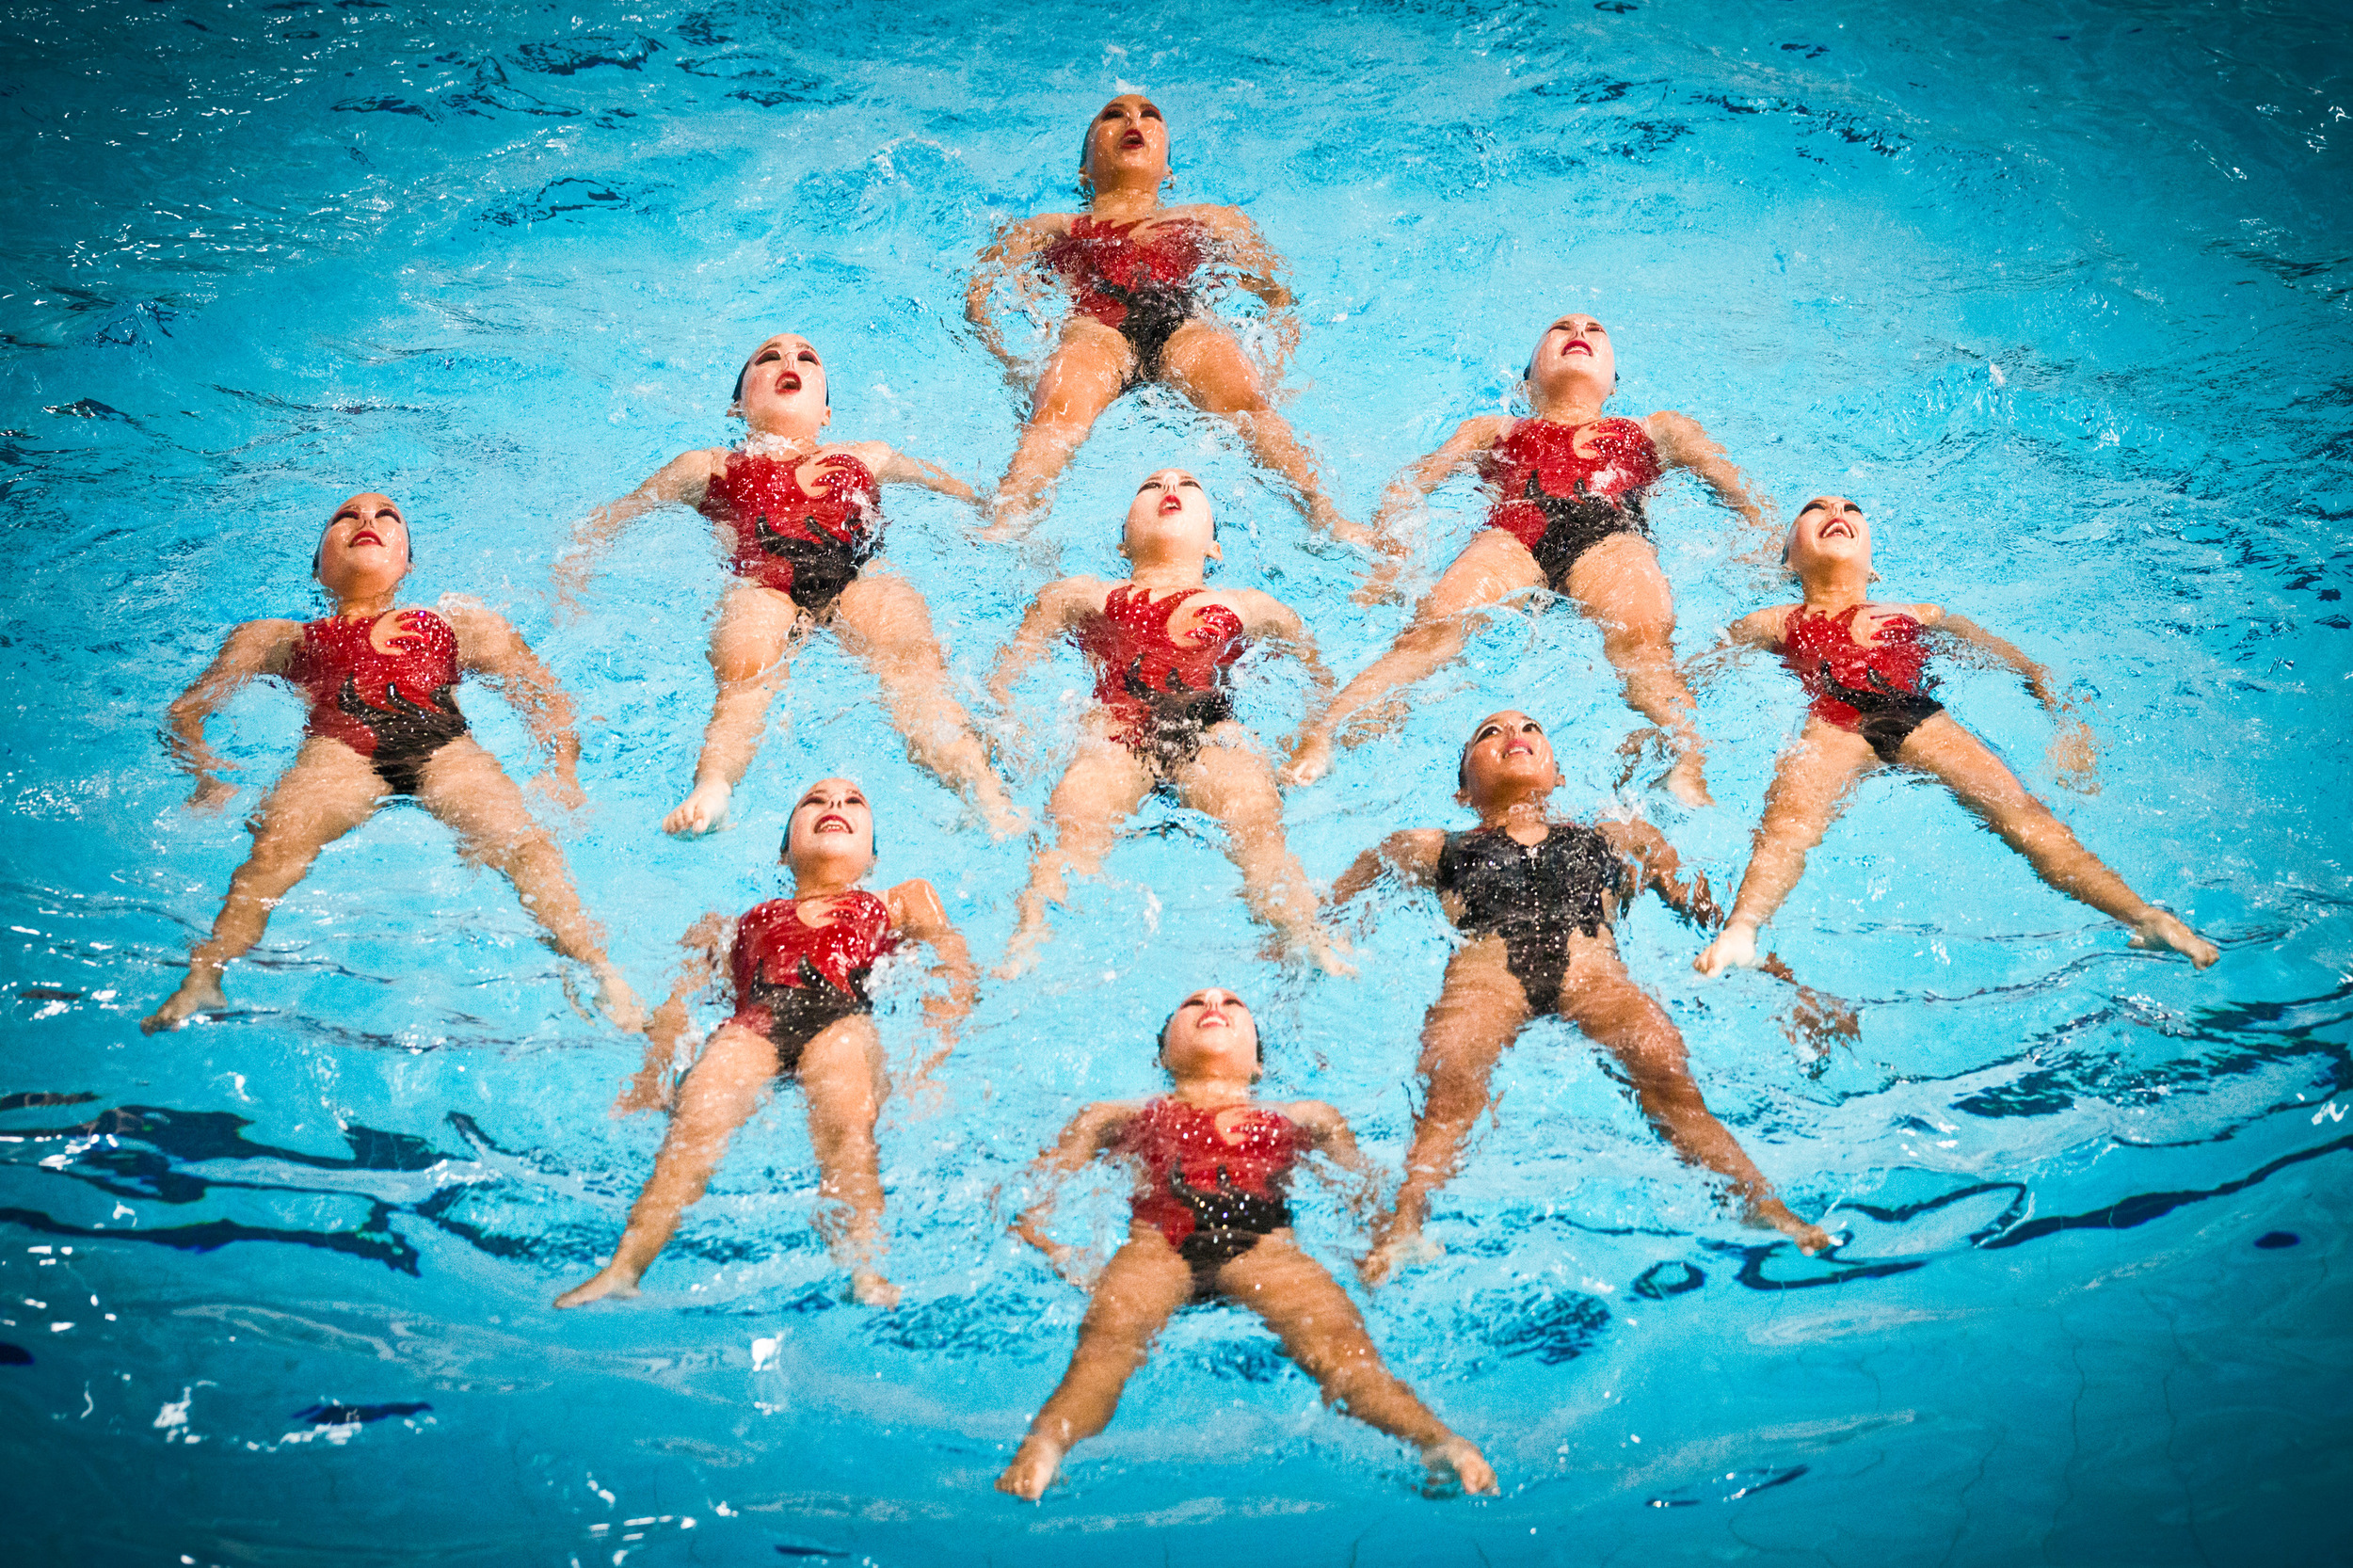 Synchronised swimmers in action during the Singapore Open at the OCBC Aquatic Centre.